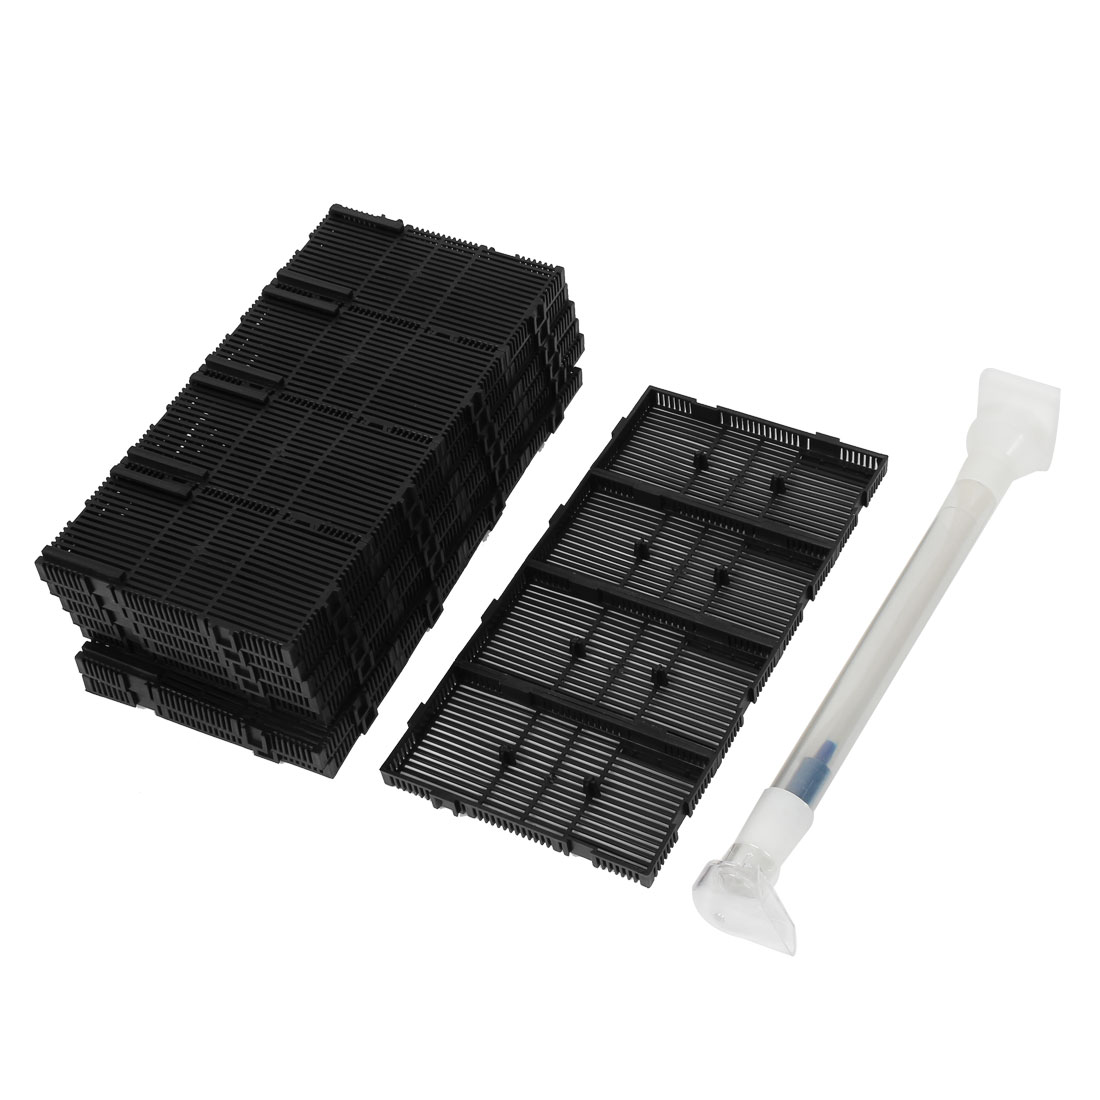 Black Plastic Rectangular Aquarium Undergravel Filter 140mmx72mmx16mm 32PCS